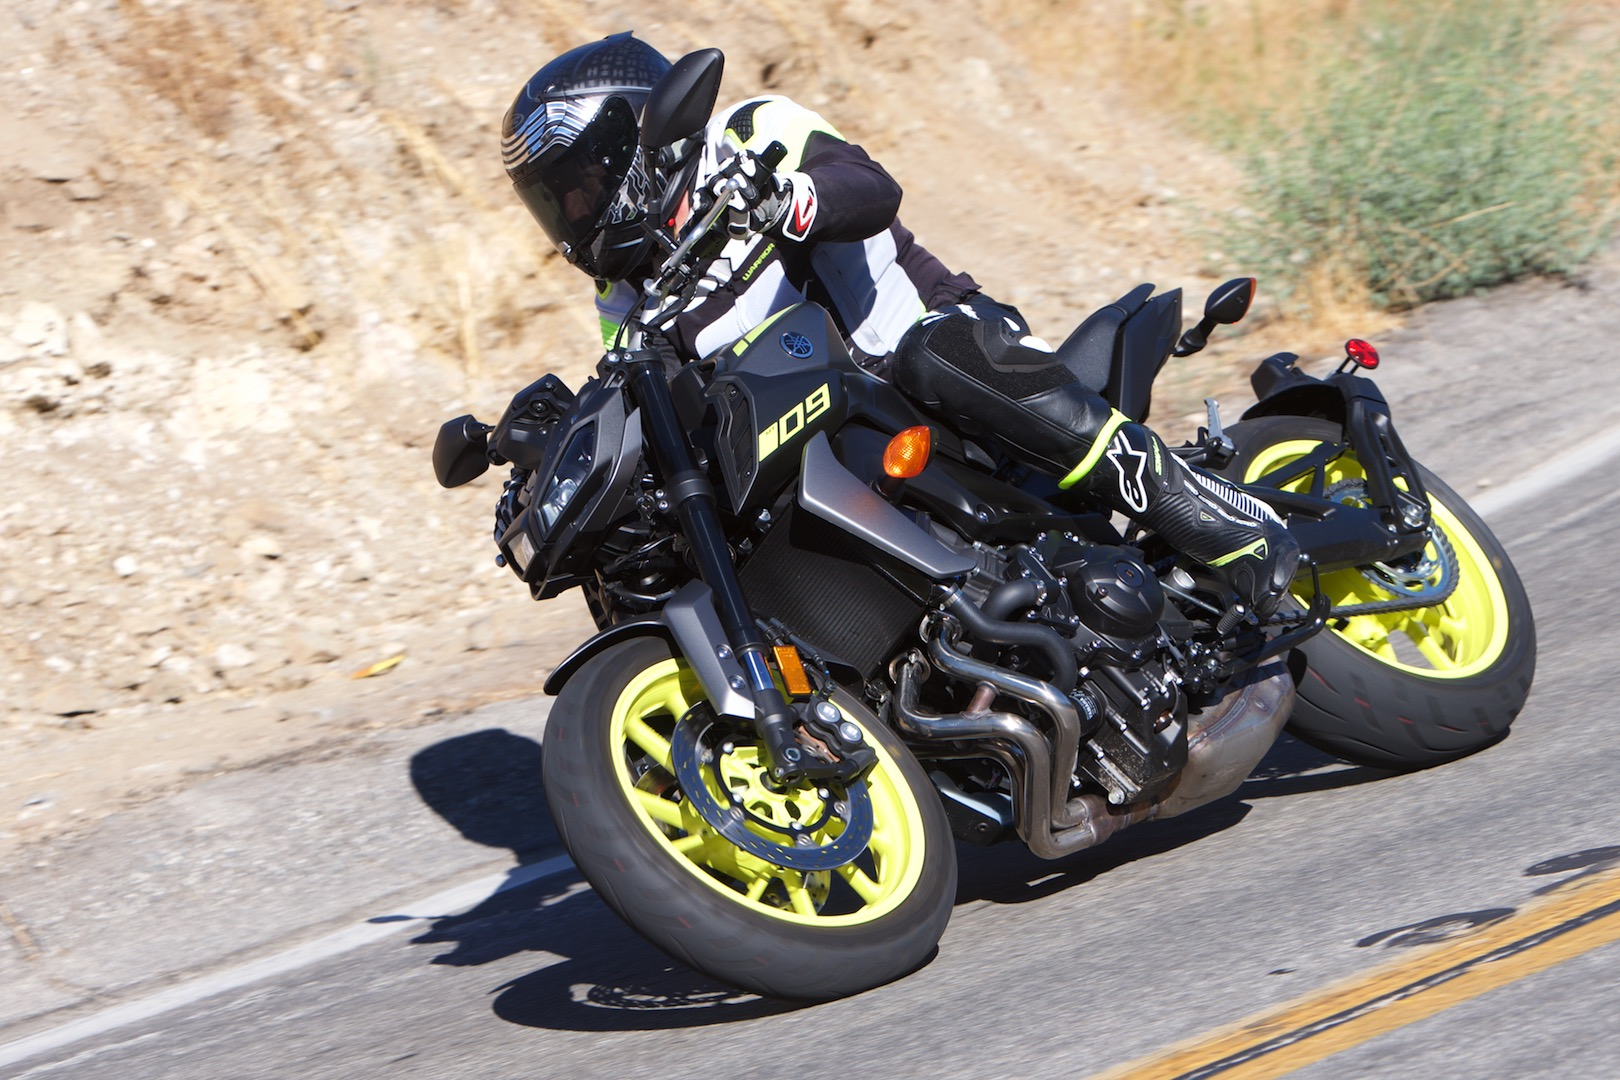 2018 yamaha mt 09 review 14 fast facts. Black Bedroom Furniture Sets. Home Design Ideas